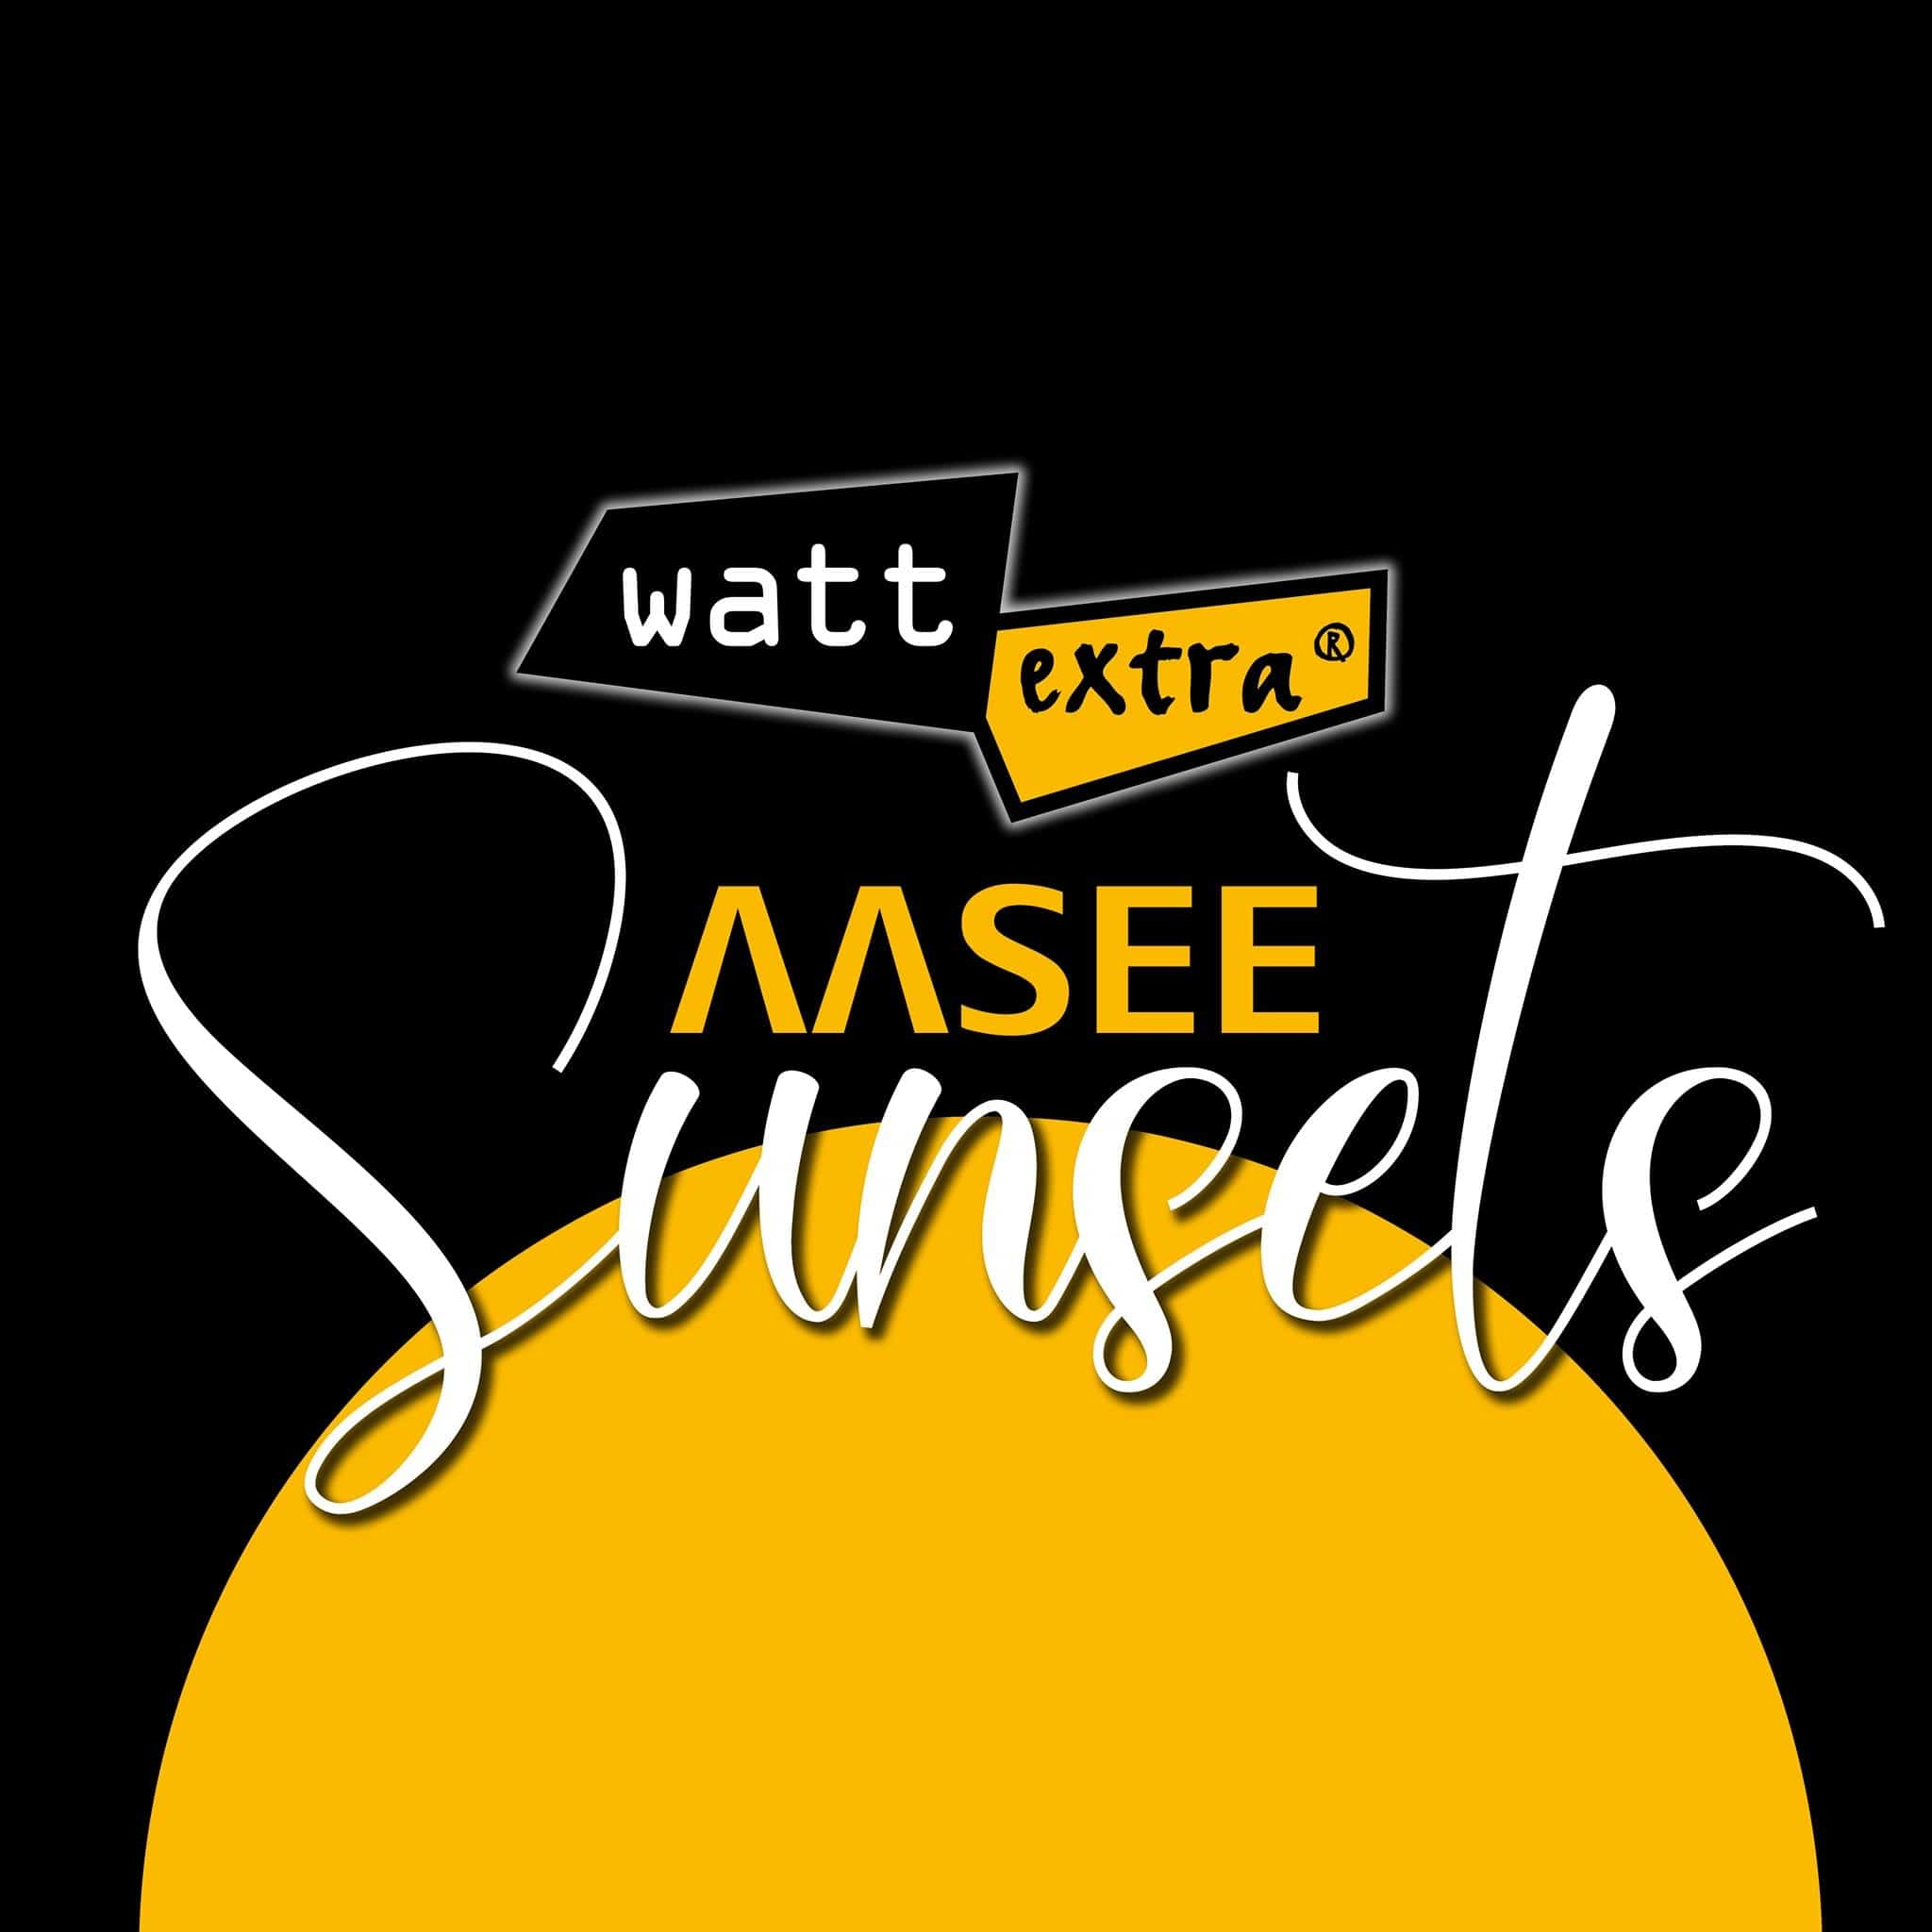 WattExtra Aasee Sunsets